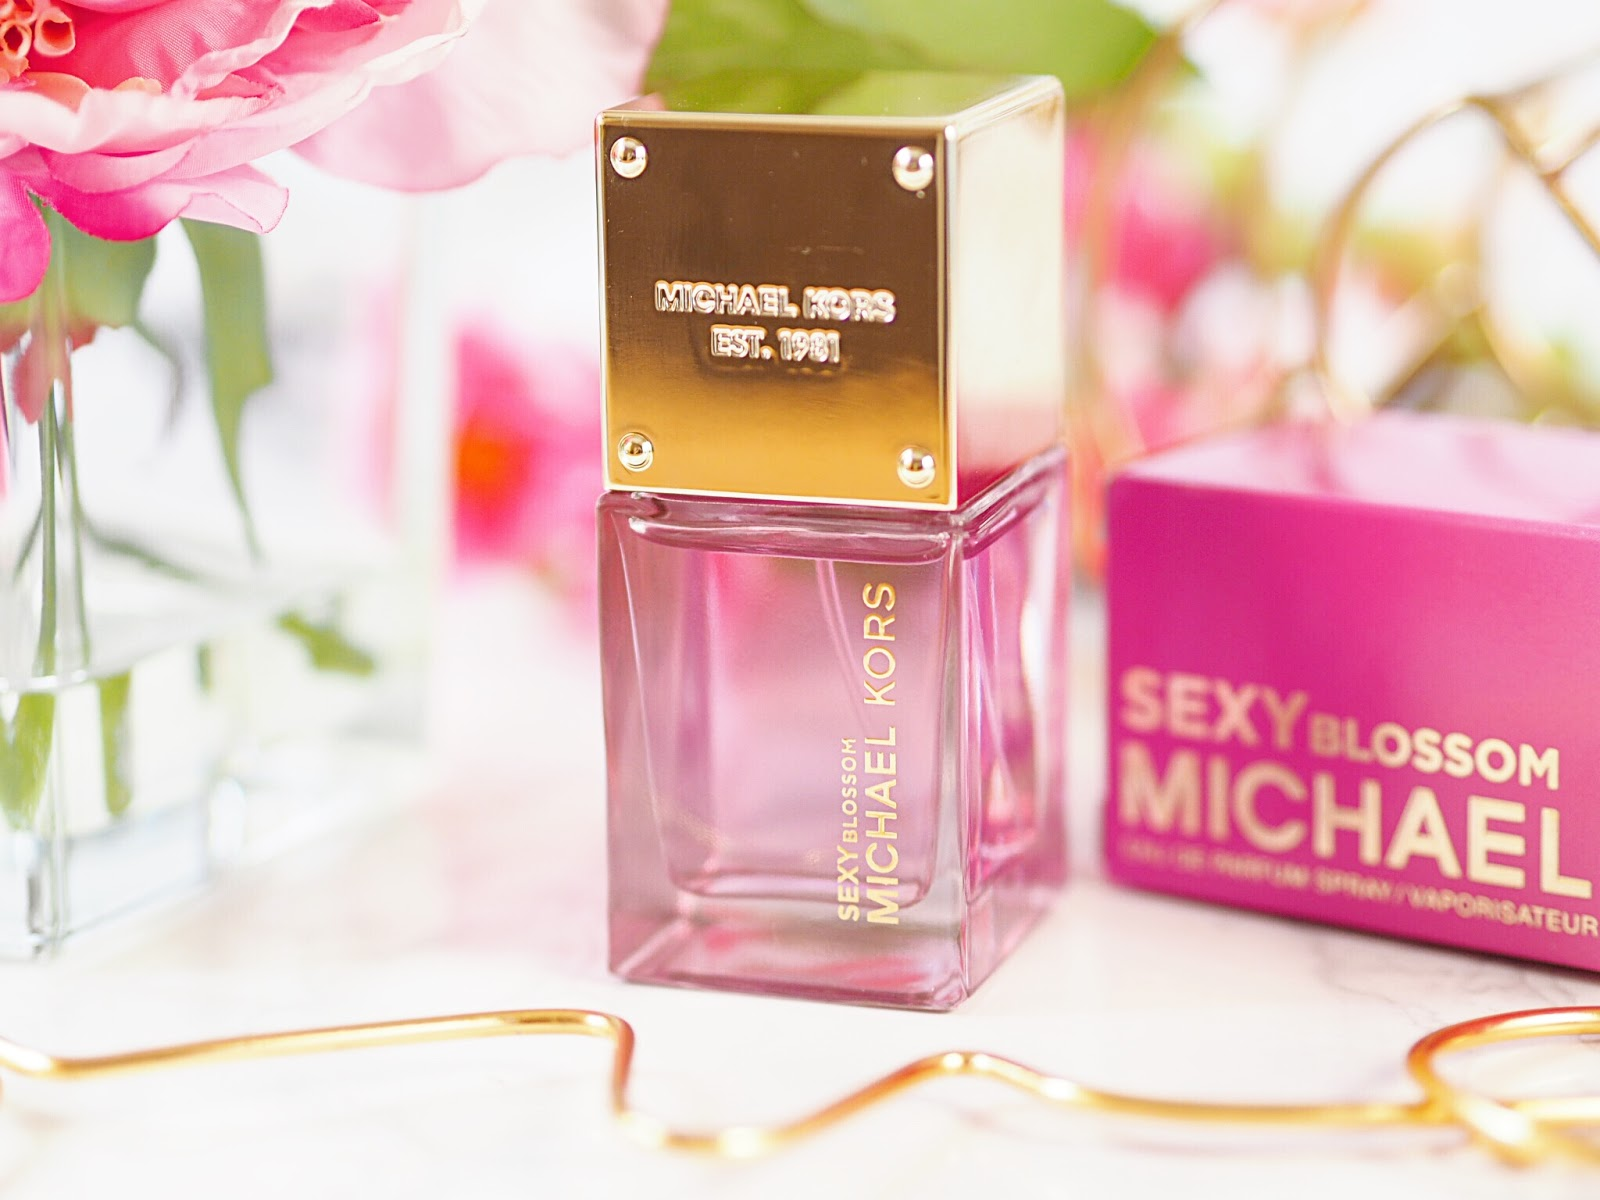 25784338d23d Michael Kors Sexy Blossom Review - Lady Writes